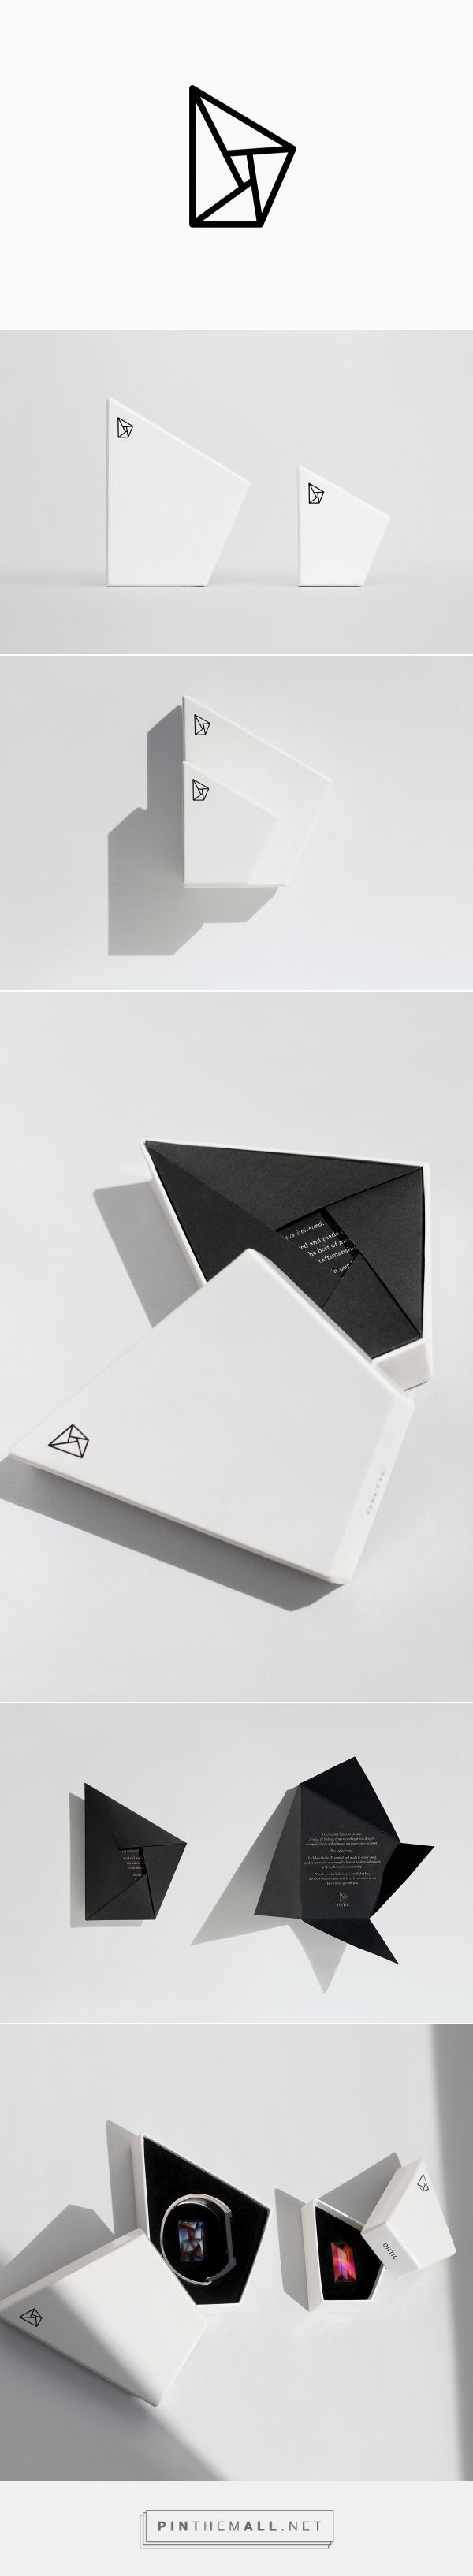 Ontic Packaging & Branding by Cindy Forster